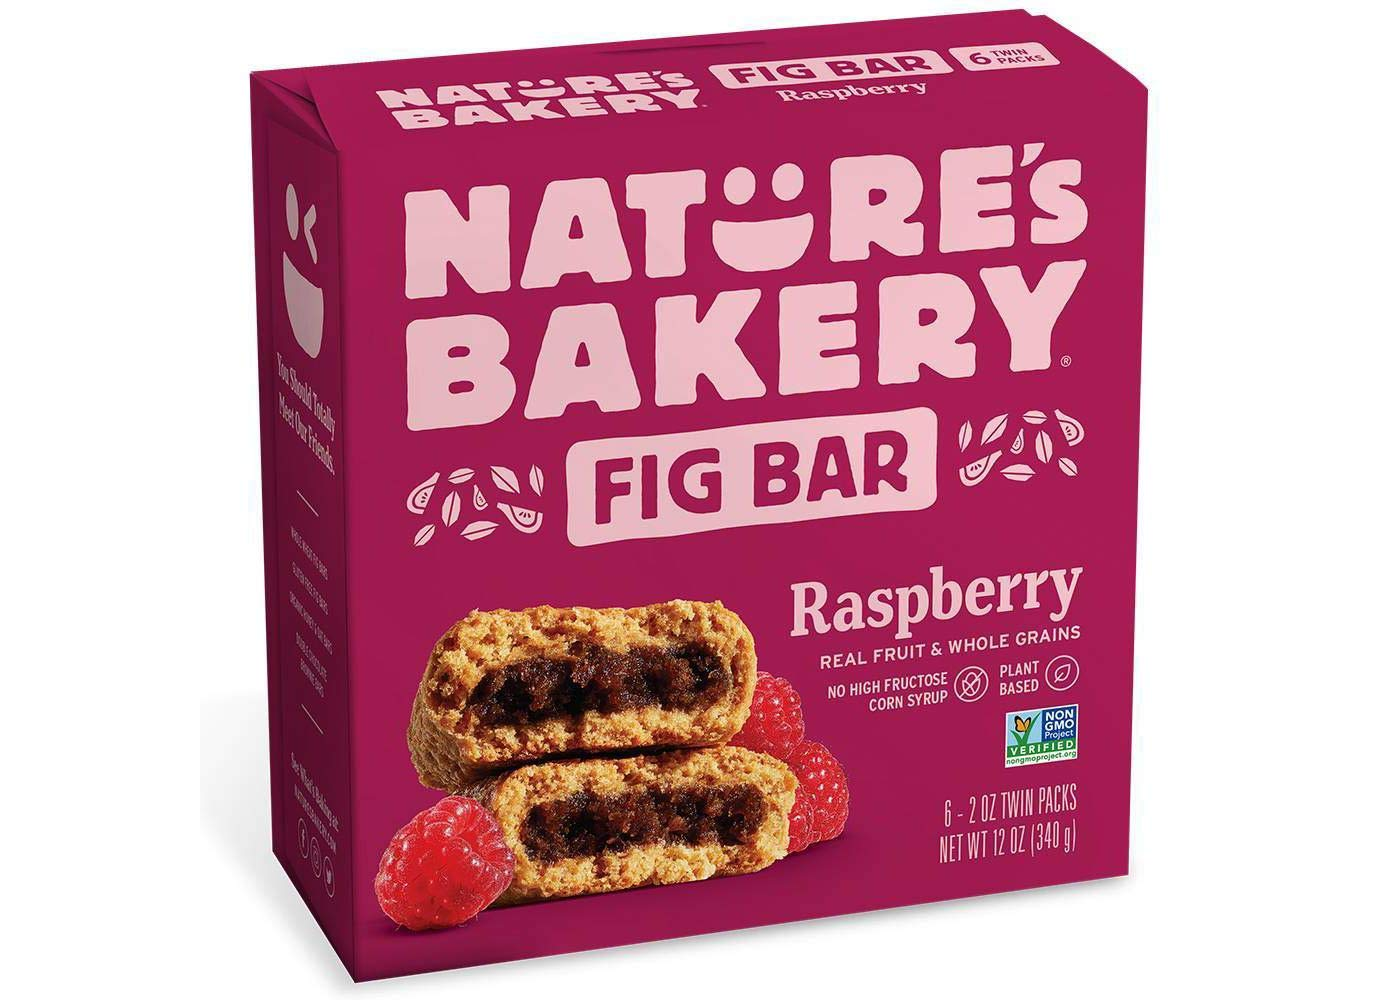 Nature's Bakery Raspberry Real Fruit, Whole Grain Fig Bar - 6 ct. (12 oz.) by Nature's Bakery FB